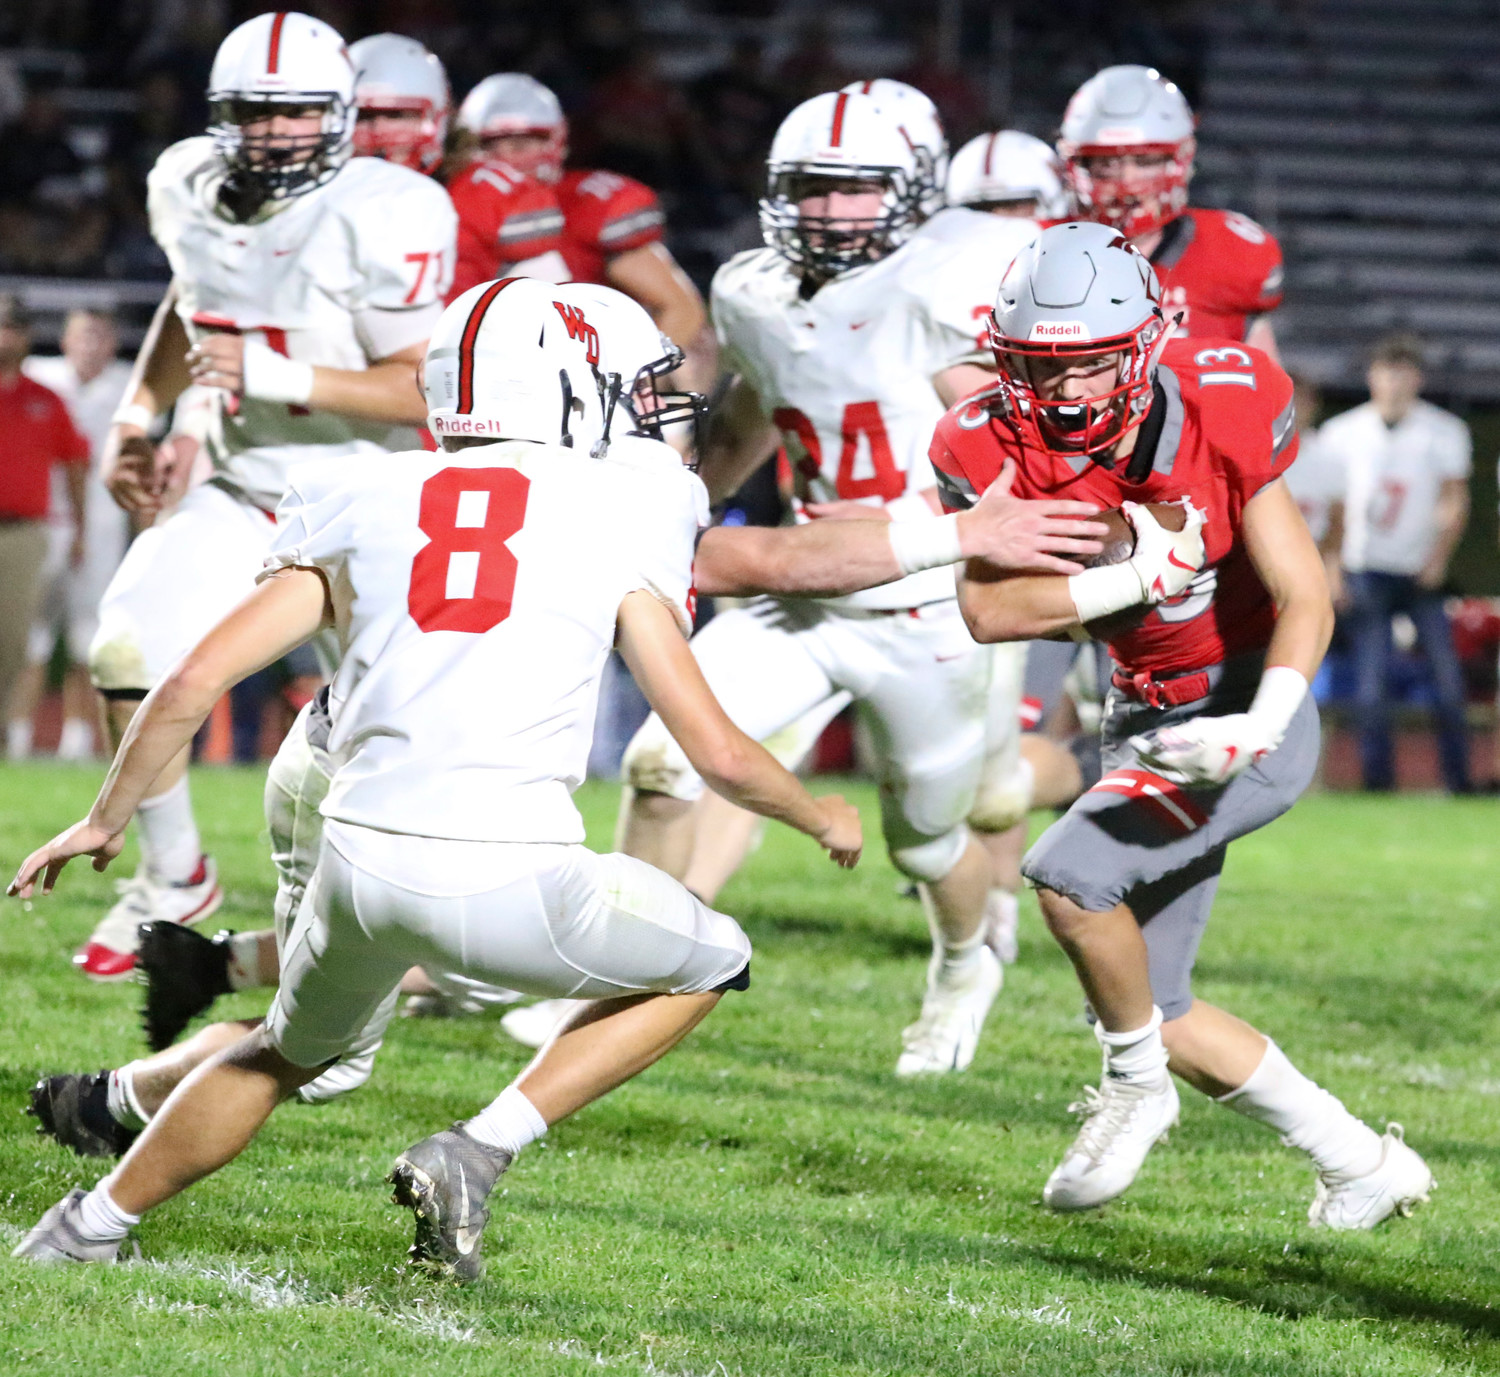 Jacob Porth finds a hole in the Western Dubuque defense.